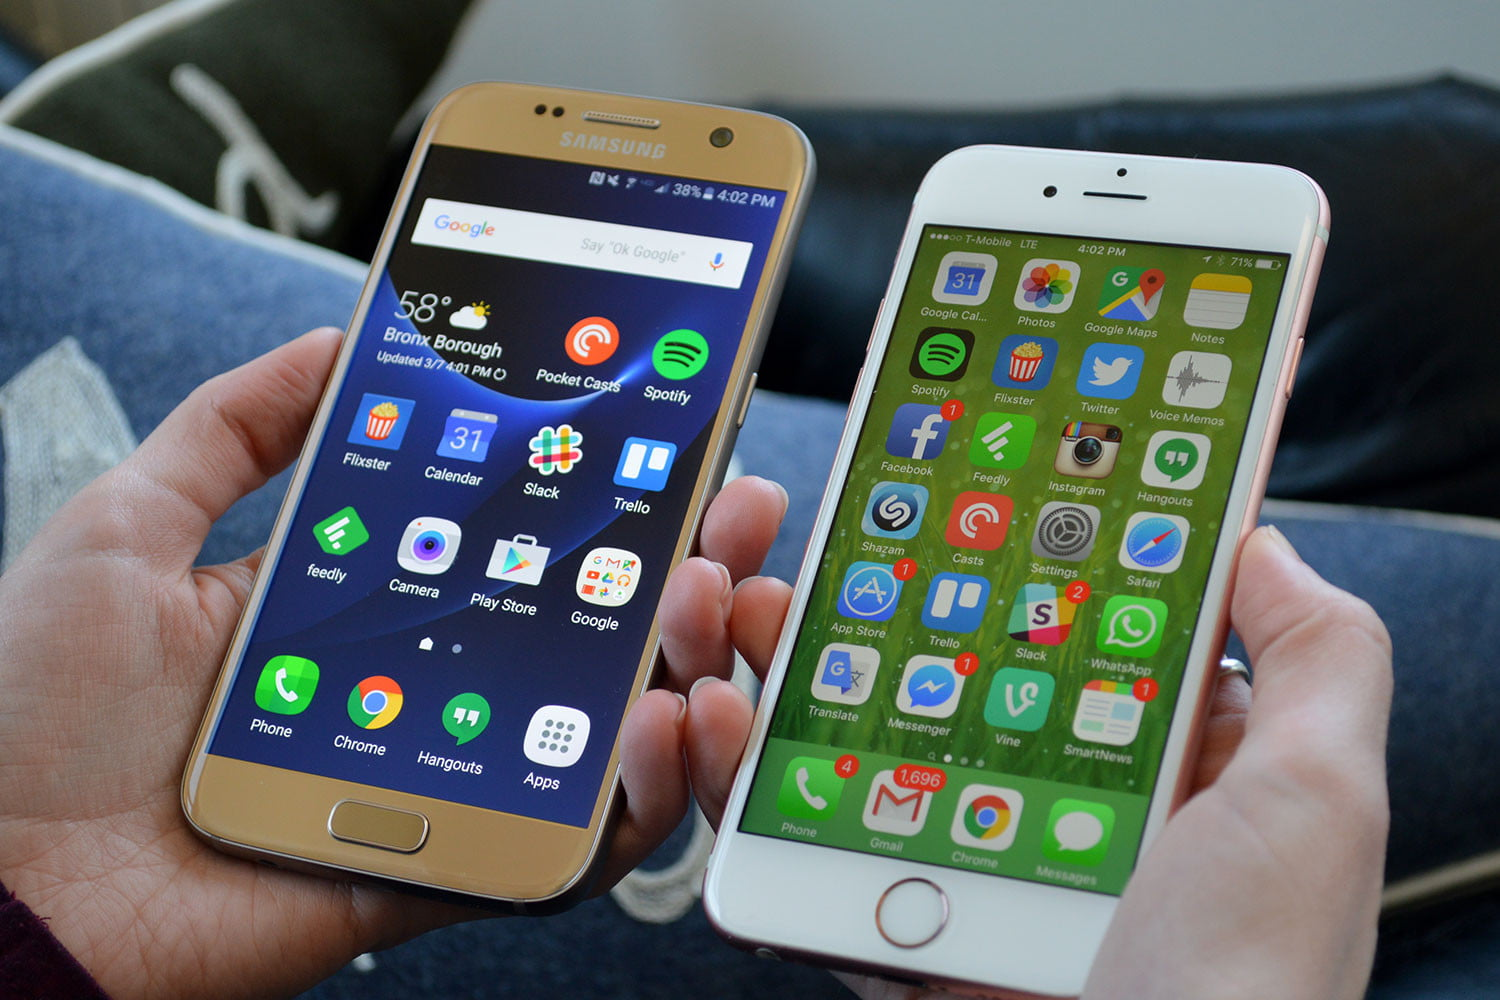 Galaxy S7 Review | Specs, Availability, and Price | Digital Trends